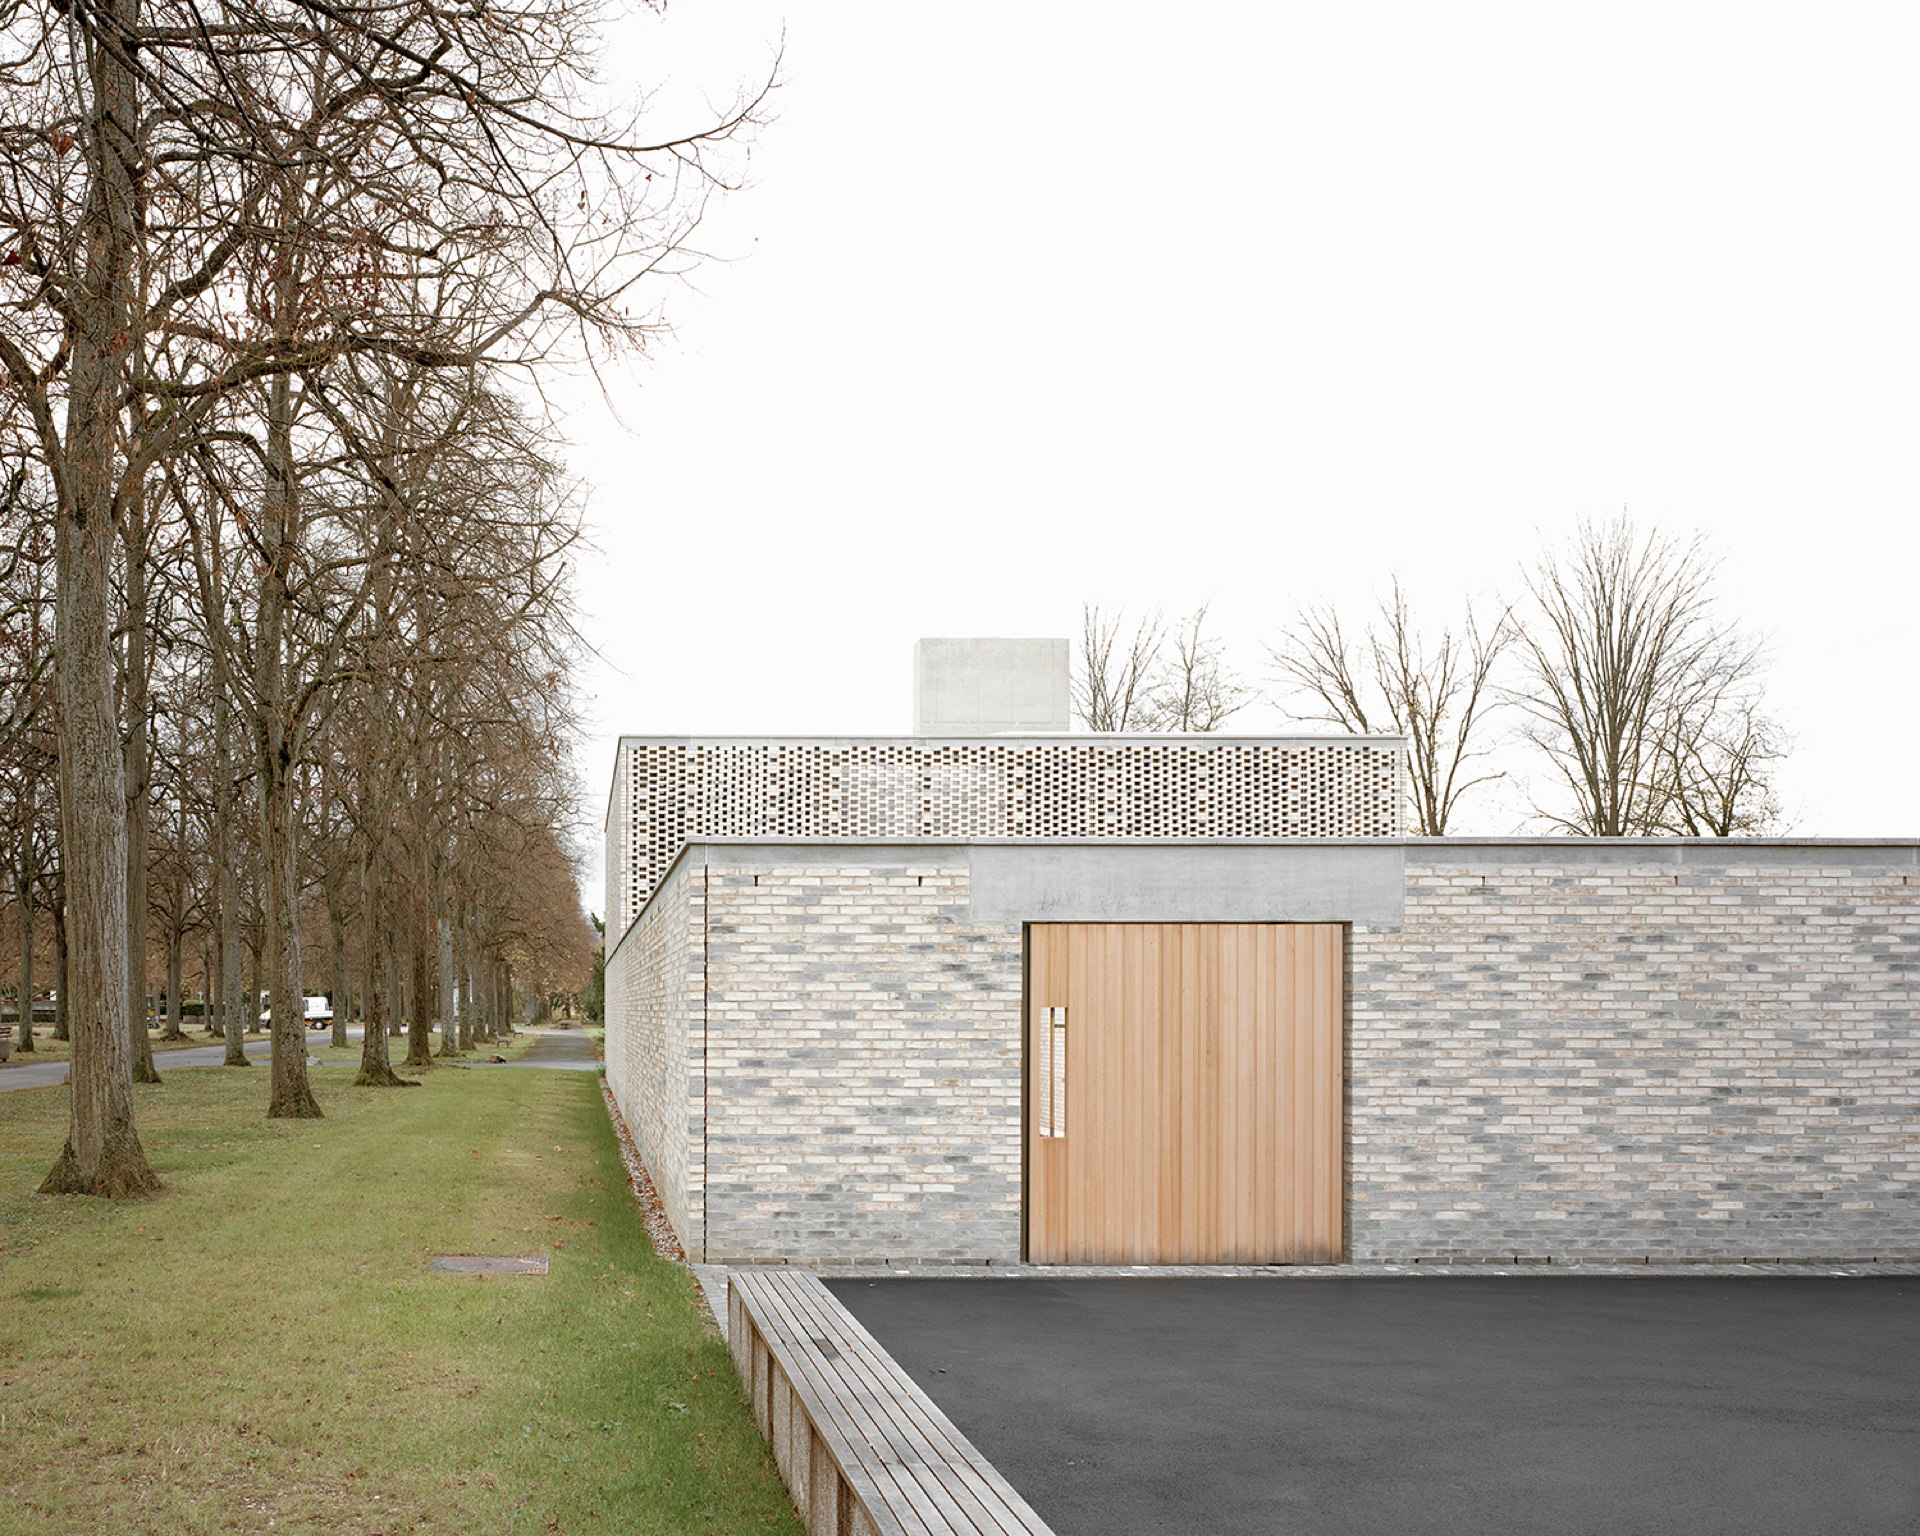 Garrigues Maurer: new crematorium for the Hörnli cemetery, Basel